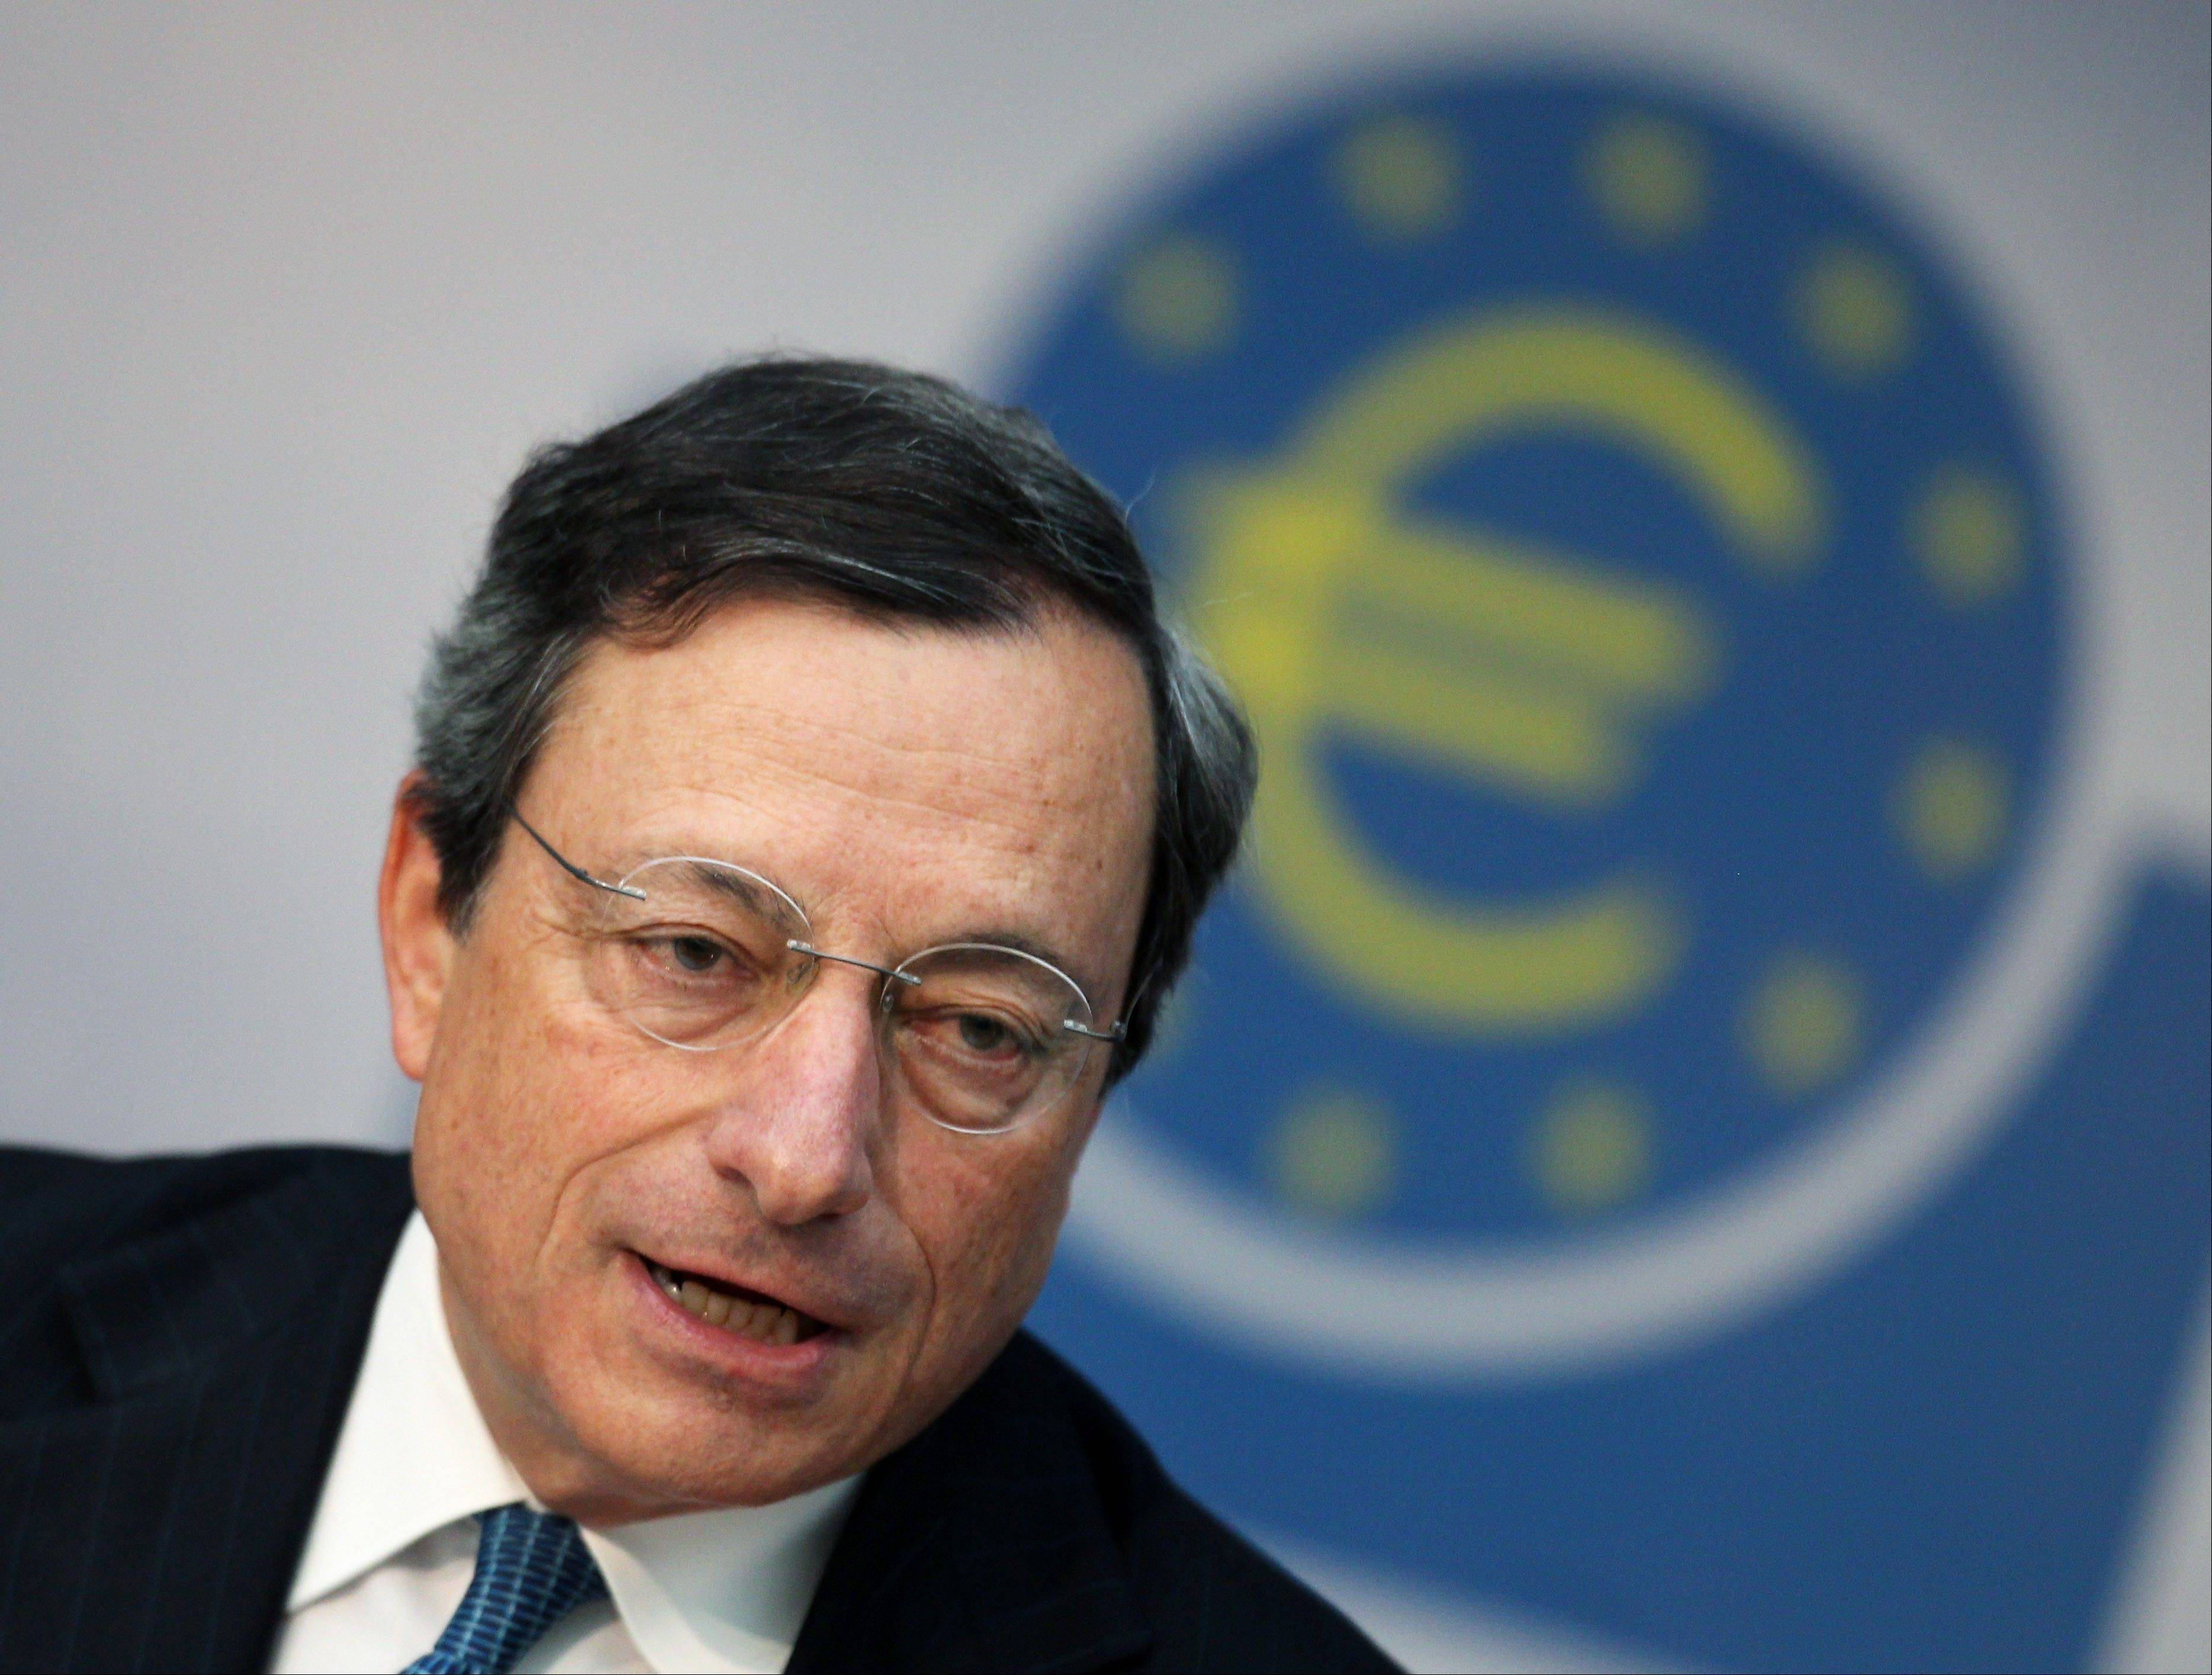 President of European Central Bank Mario Draghi